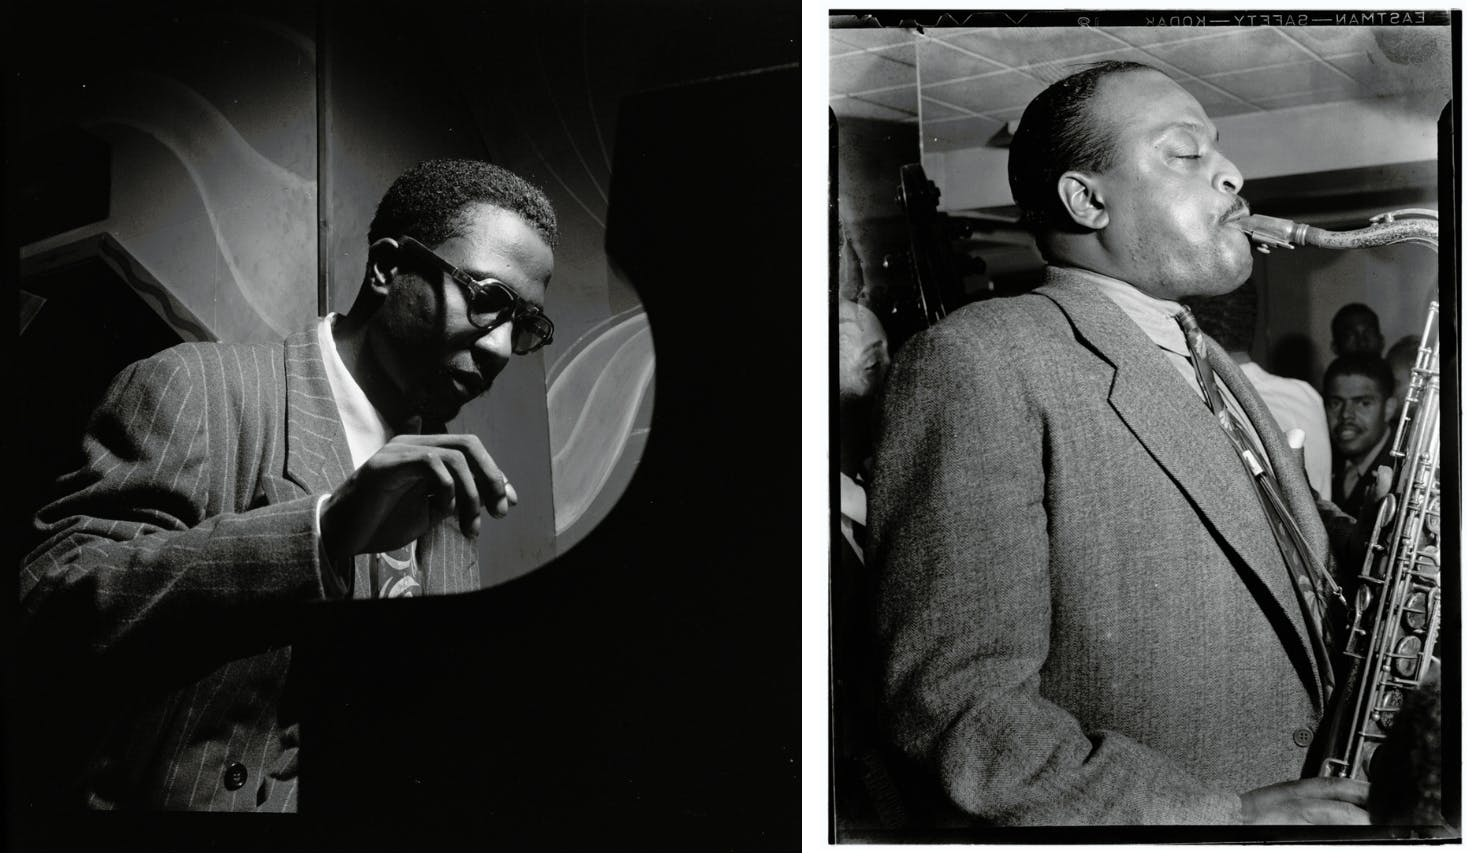 Portrait of Thelonious Monk, Minton's Playhouse, New York, c.1947, and Jazz tenor saxophonist Ben Webster at Famous Door, New York, c. 1947, photos by William P. Gottlieb, Public Domain